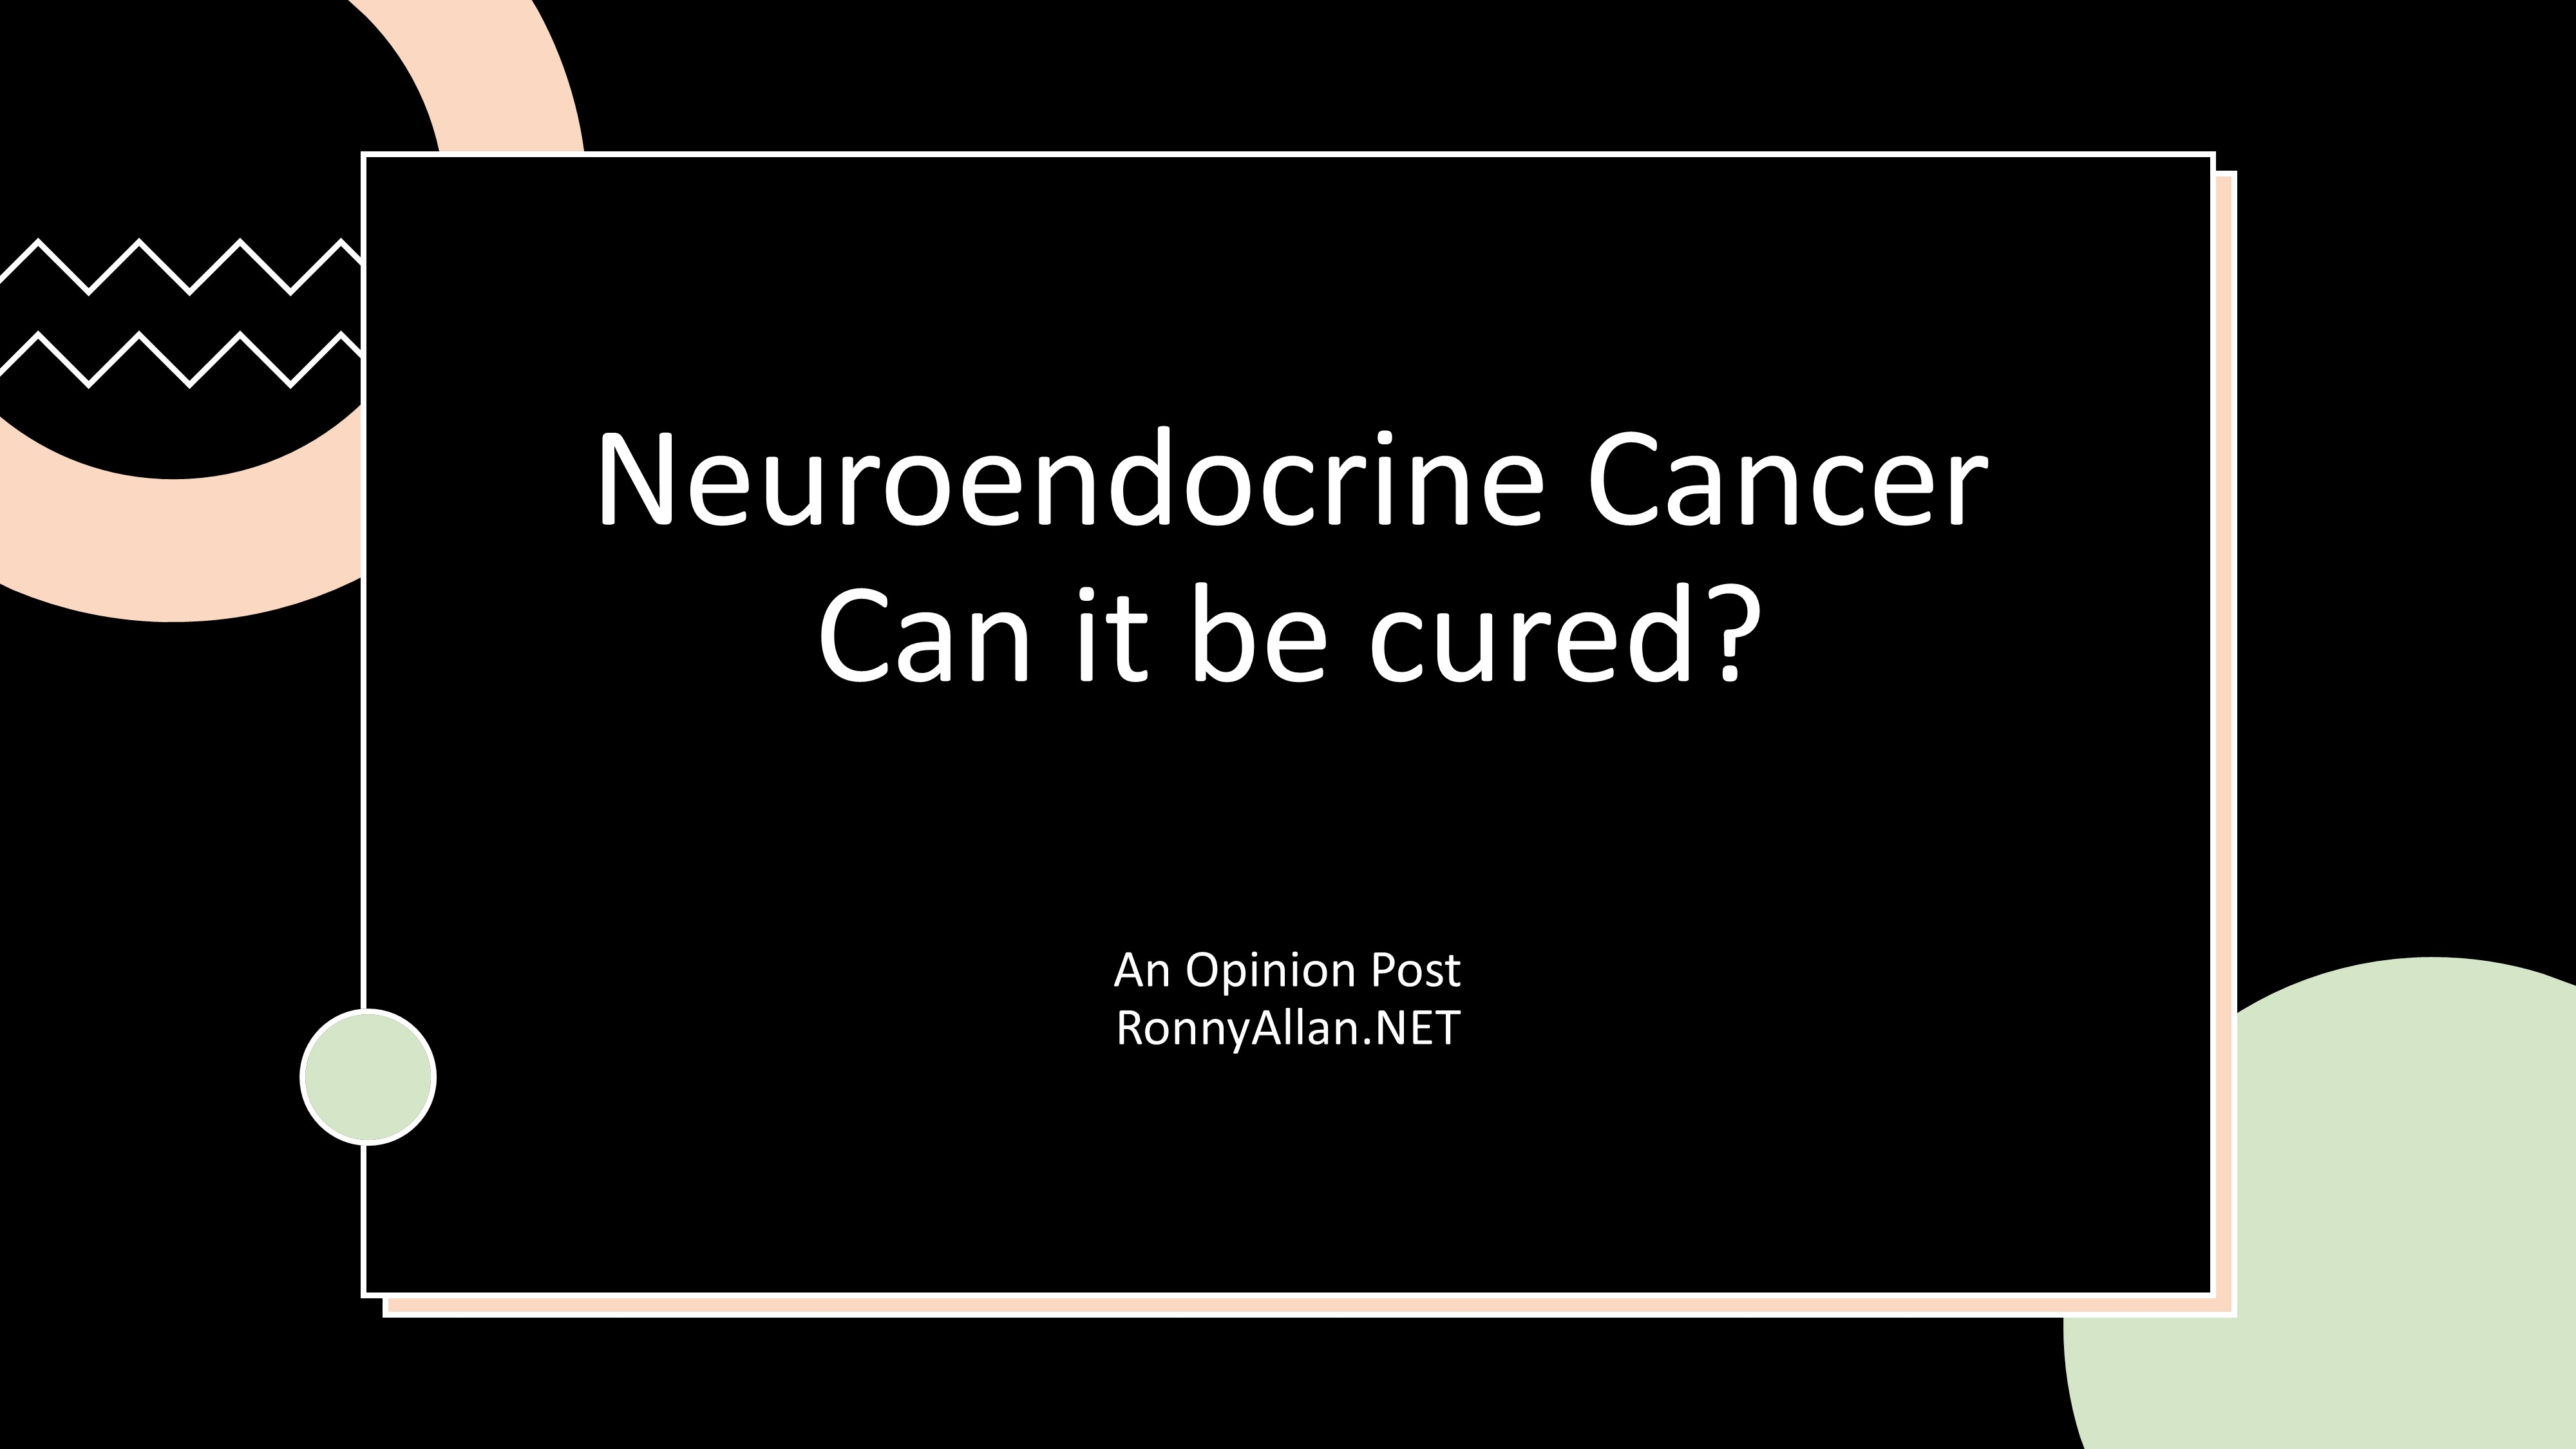 Neuroendocrine cancer can be cured, Cancer pancreatic cure. Cancerul pancreatic